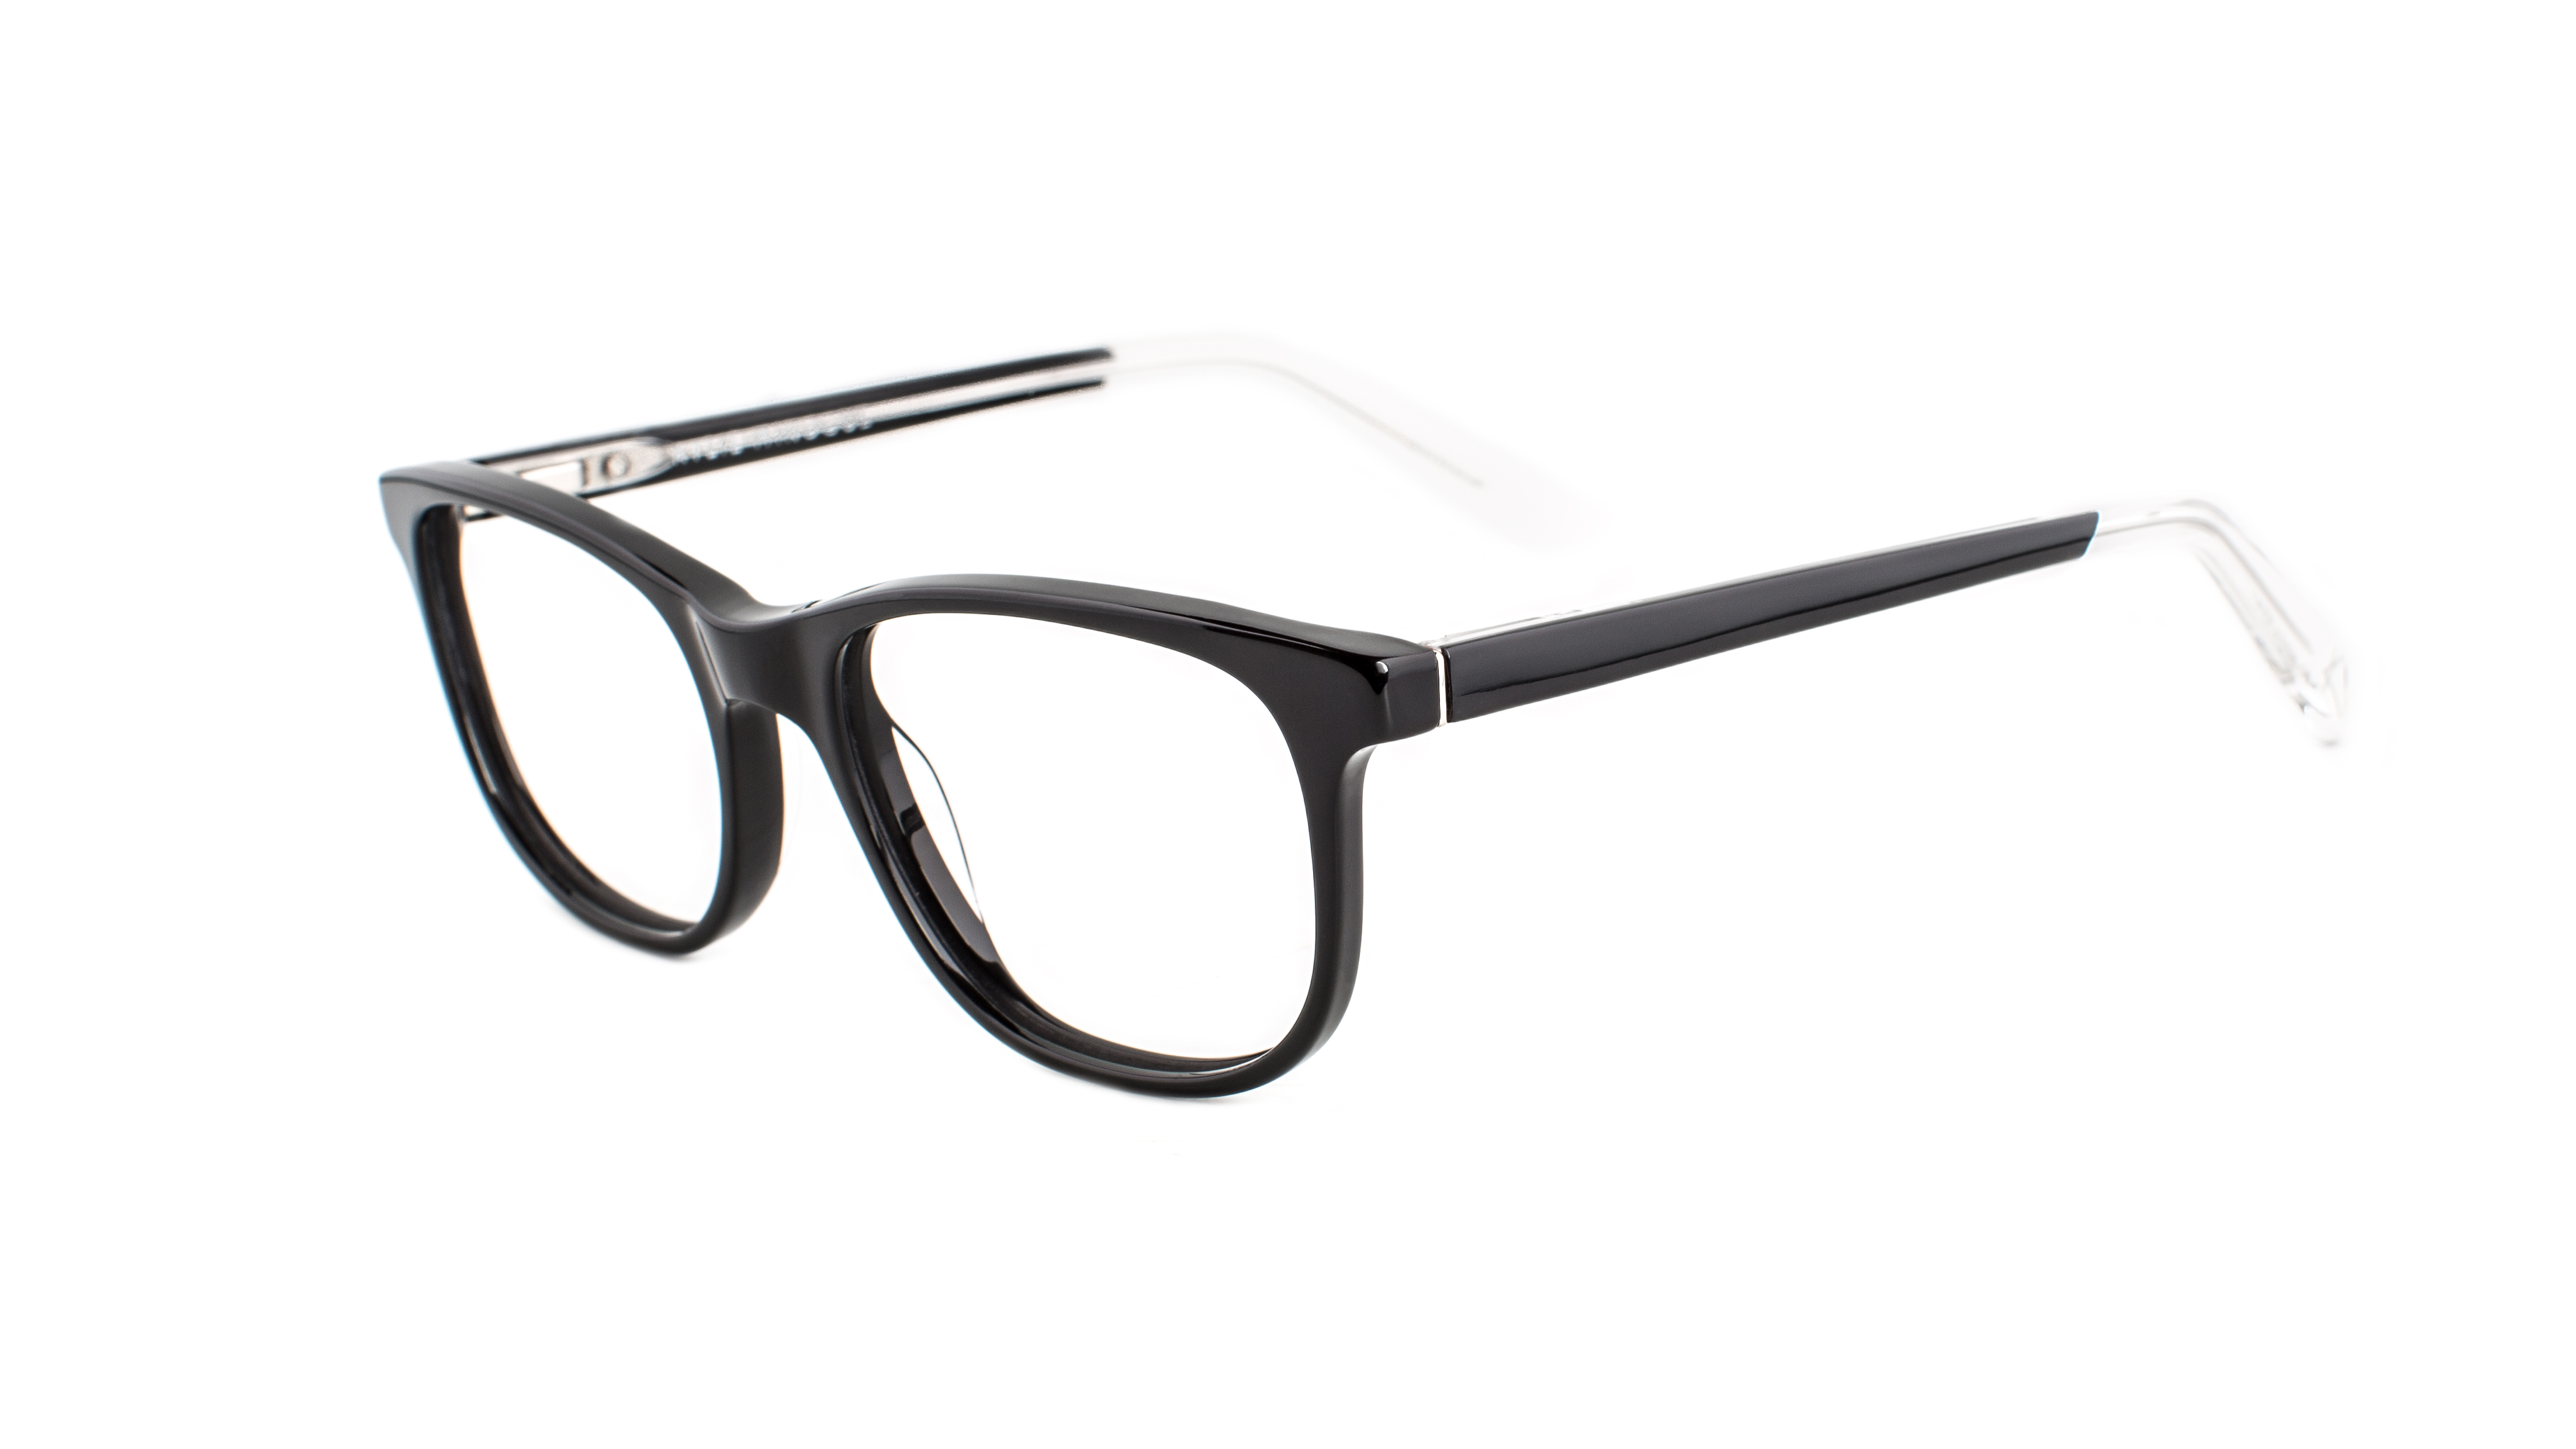 Kylie Minogue Eyewear_Kylie 15_SKU 30520332_RRP 2 pairs from $369 (2)